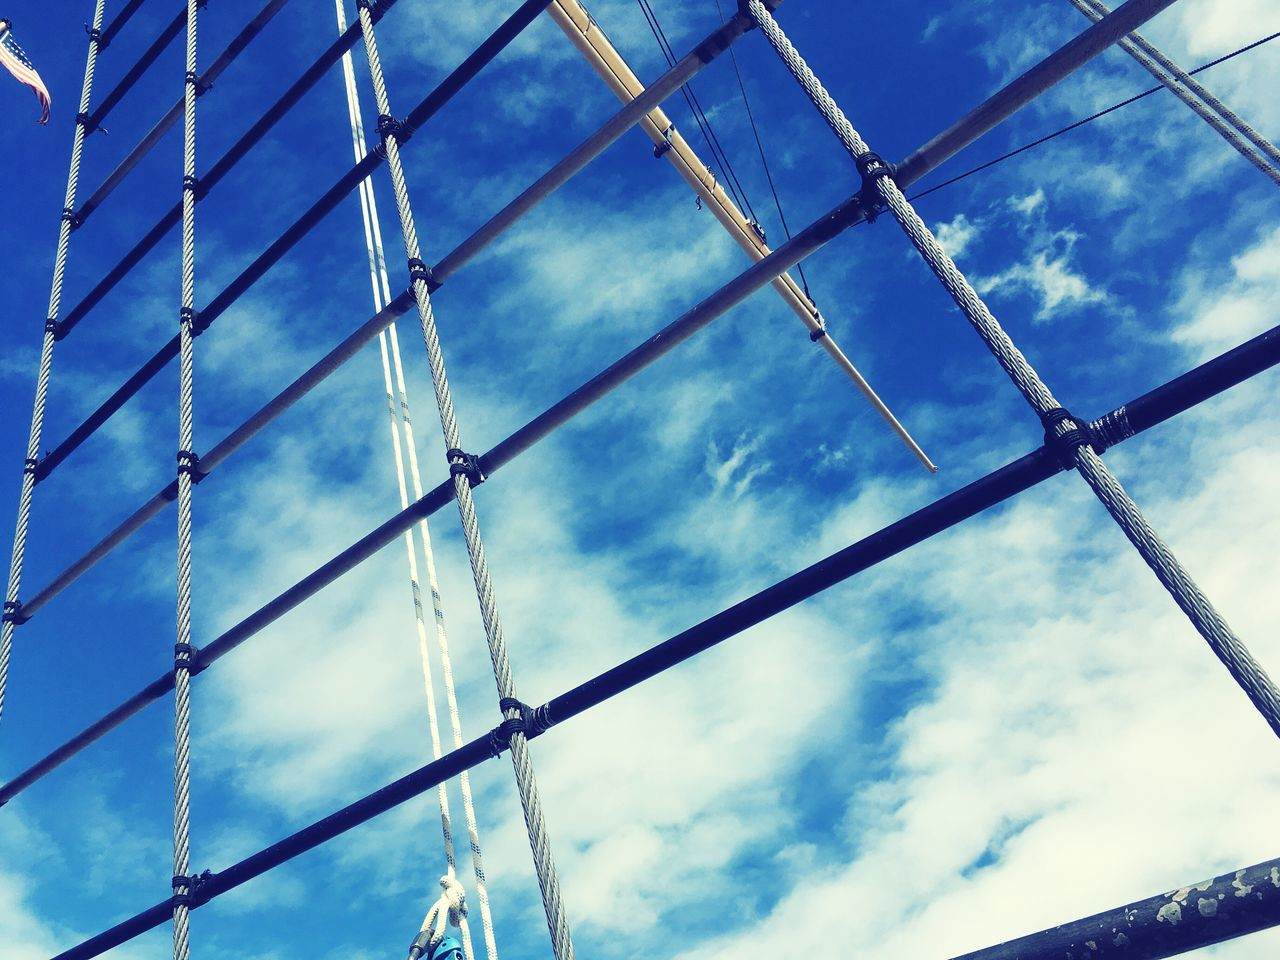 low angle view, sky, cloud - sky, metal, no people, day, backgrounds, full frame, outdoors, pattern, blue, close-up, nature